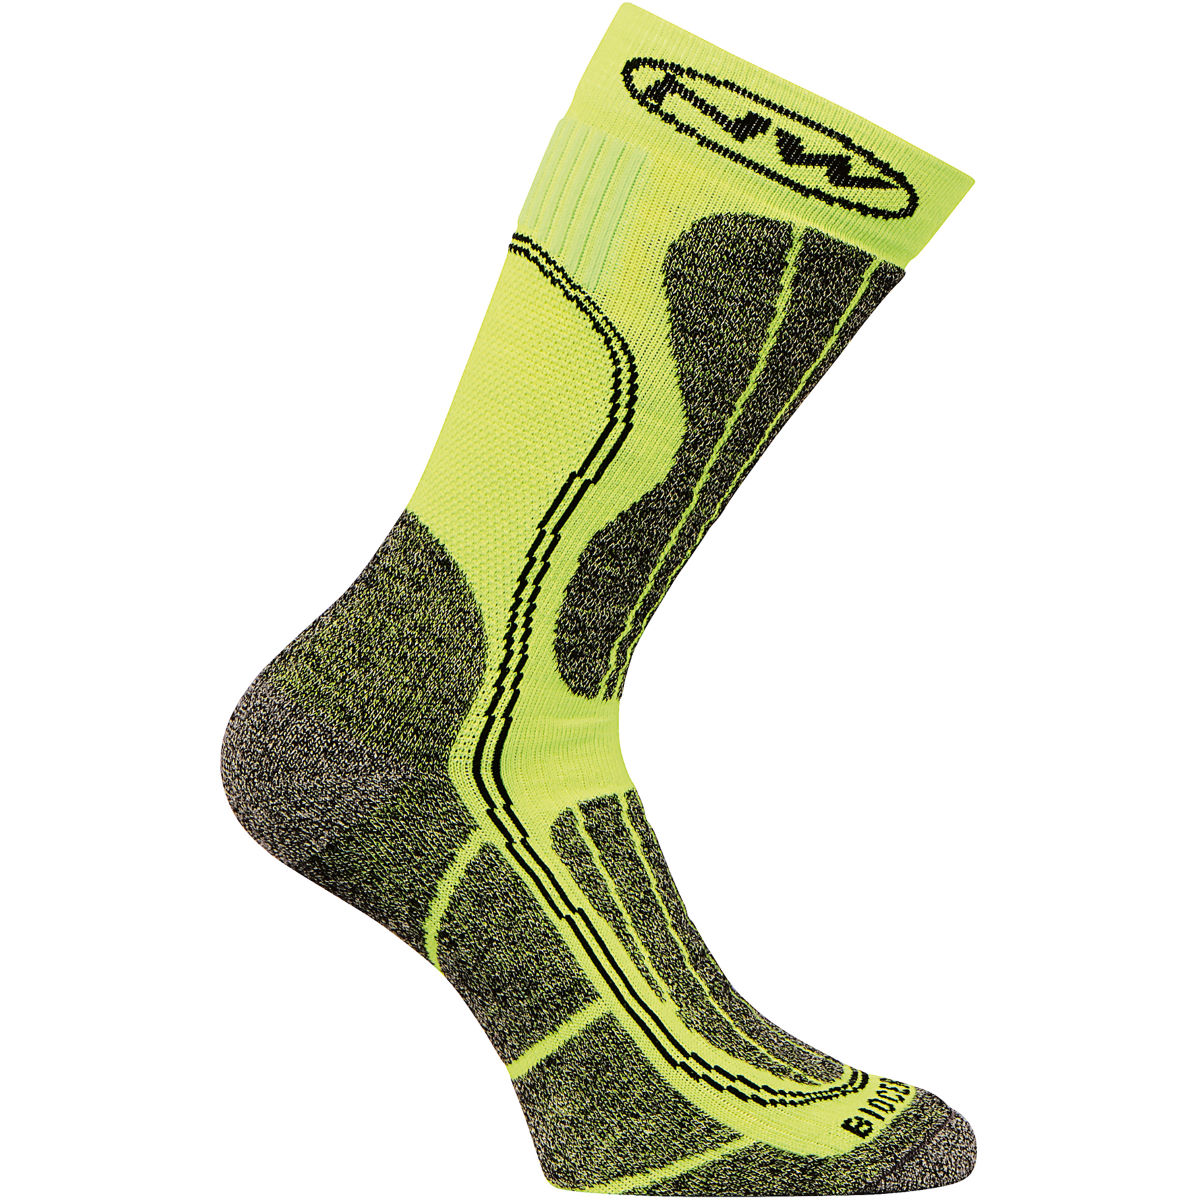 Northwave Husky Ceramictech High Socks